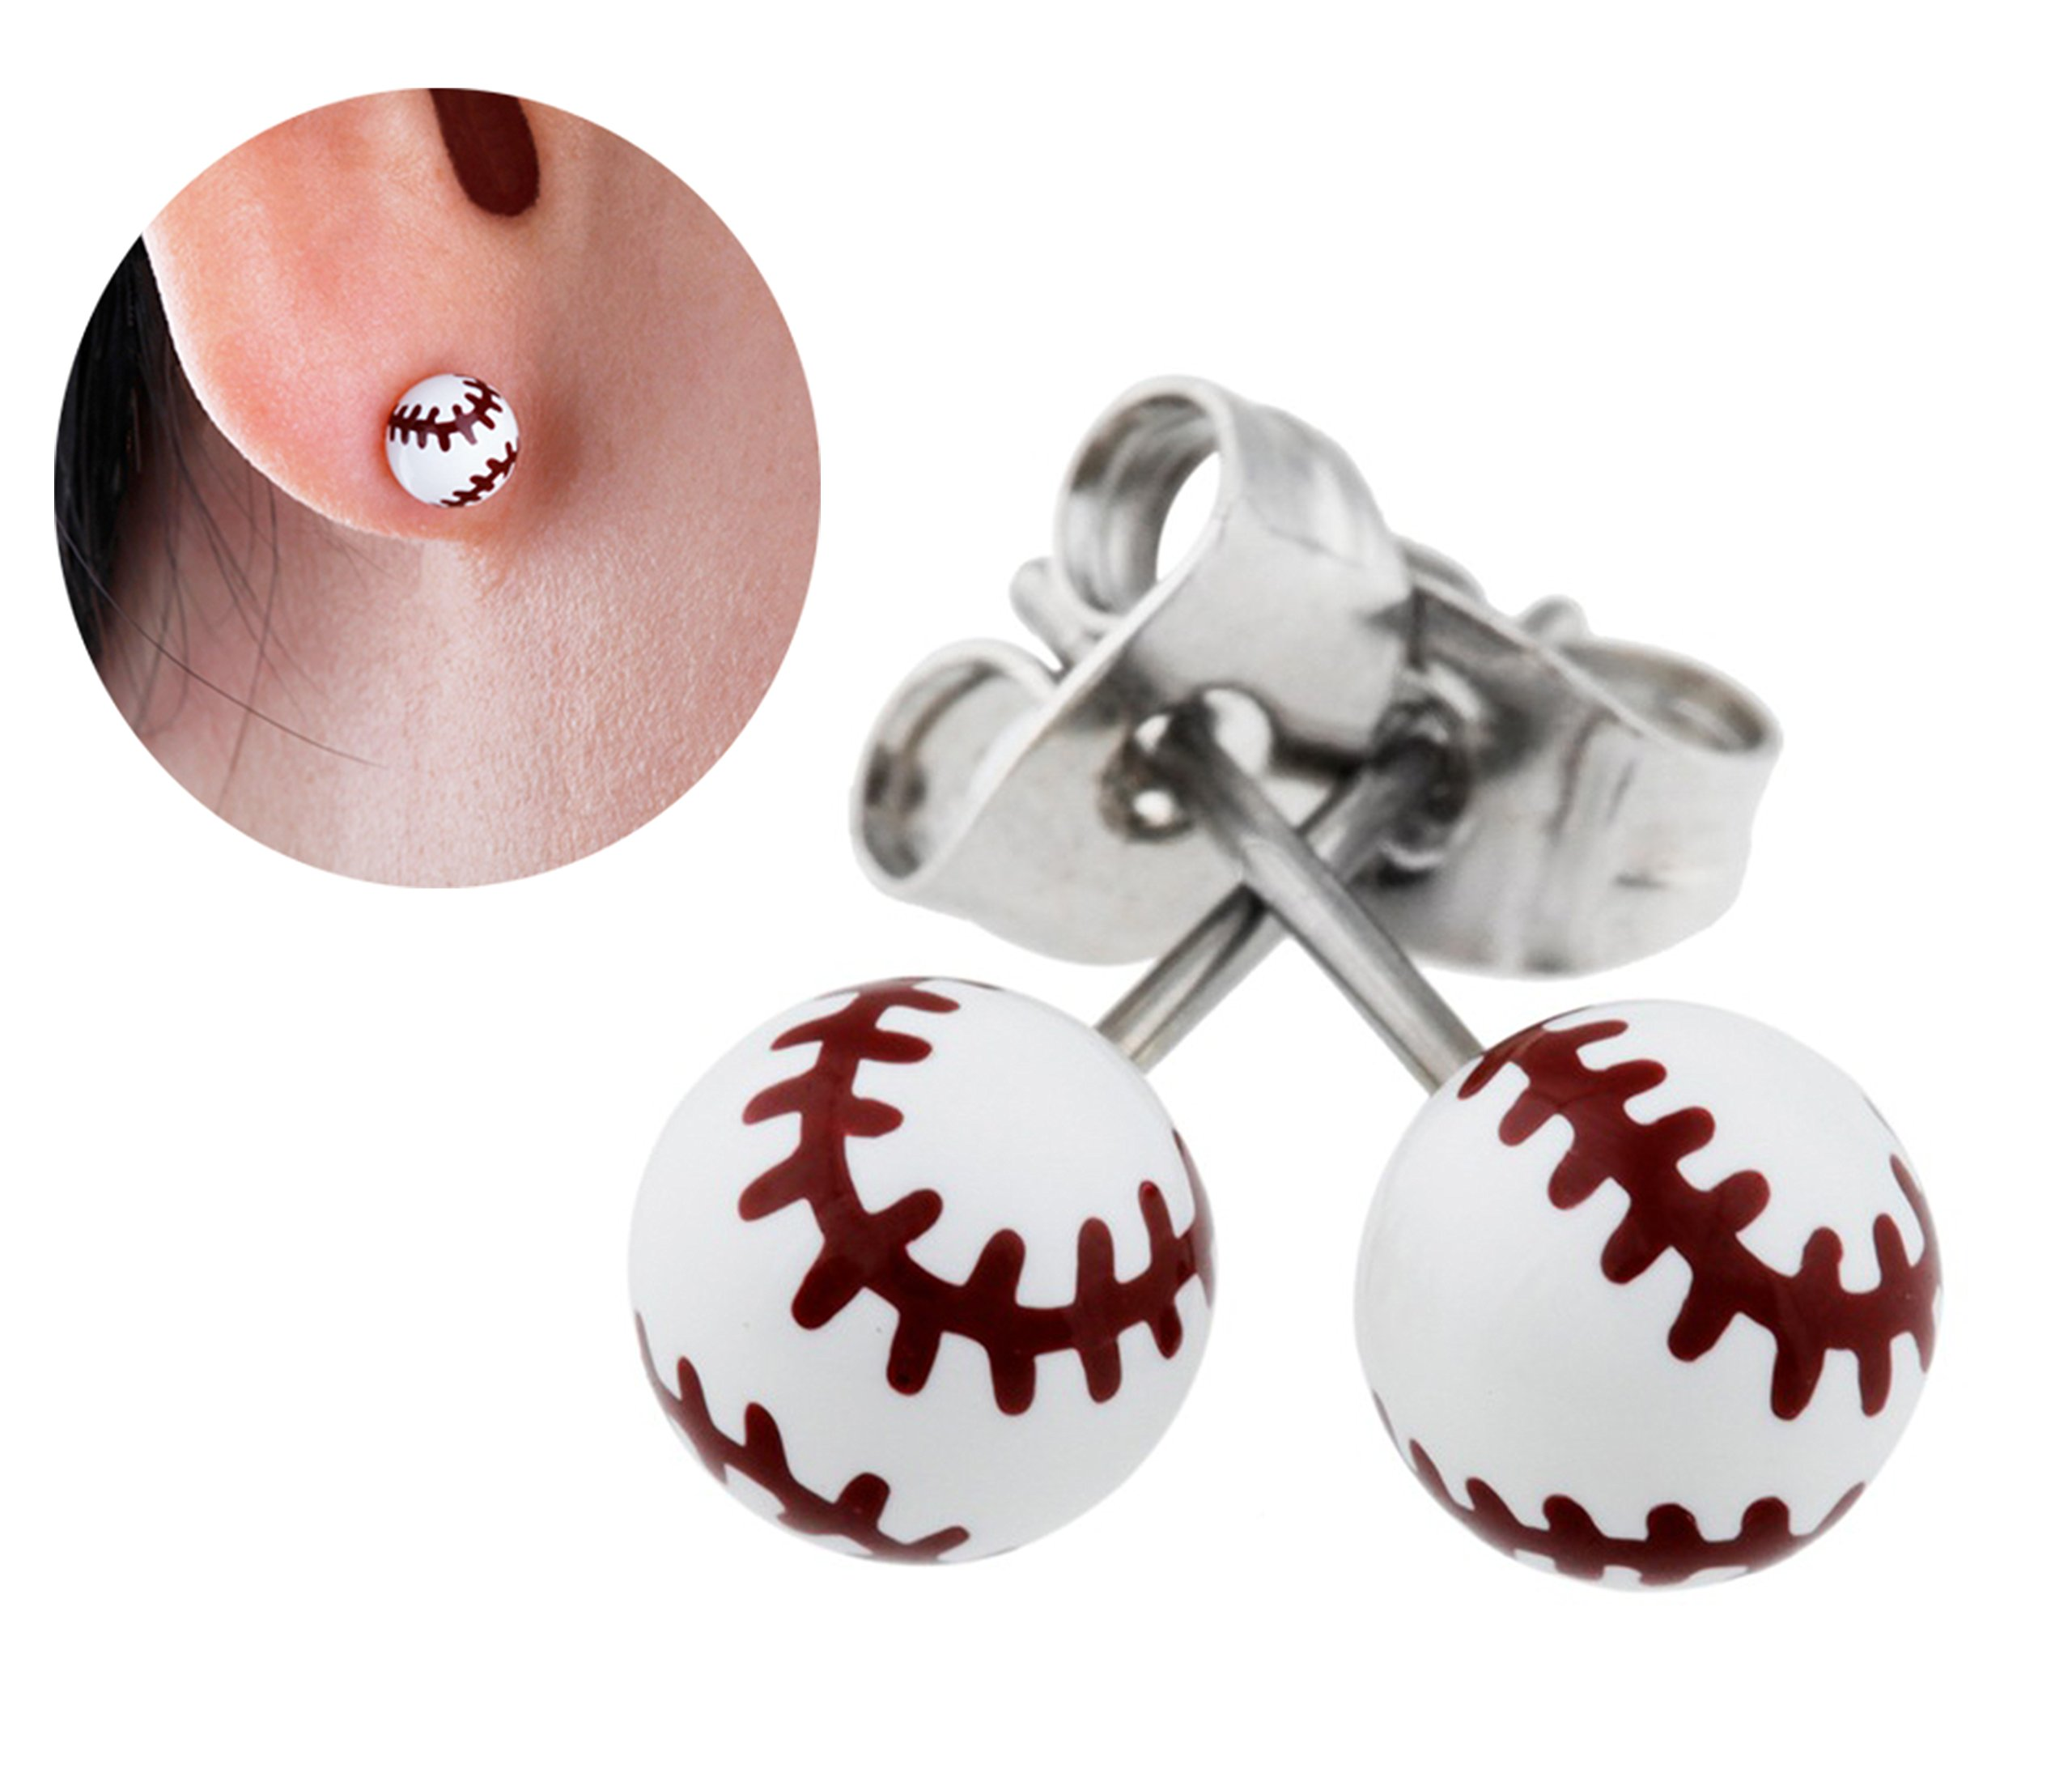 Best Wing Jewelry ''Tiny Baseball'' Stud Stainless Steel Post Earrings